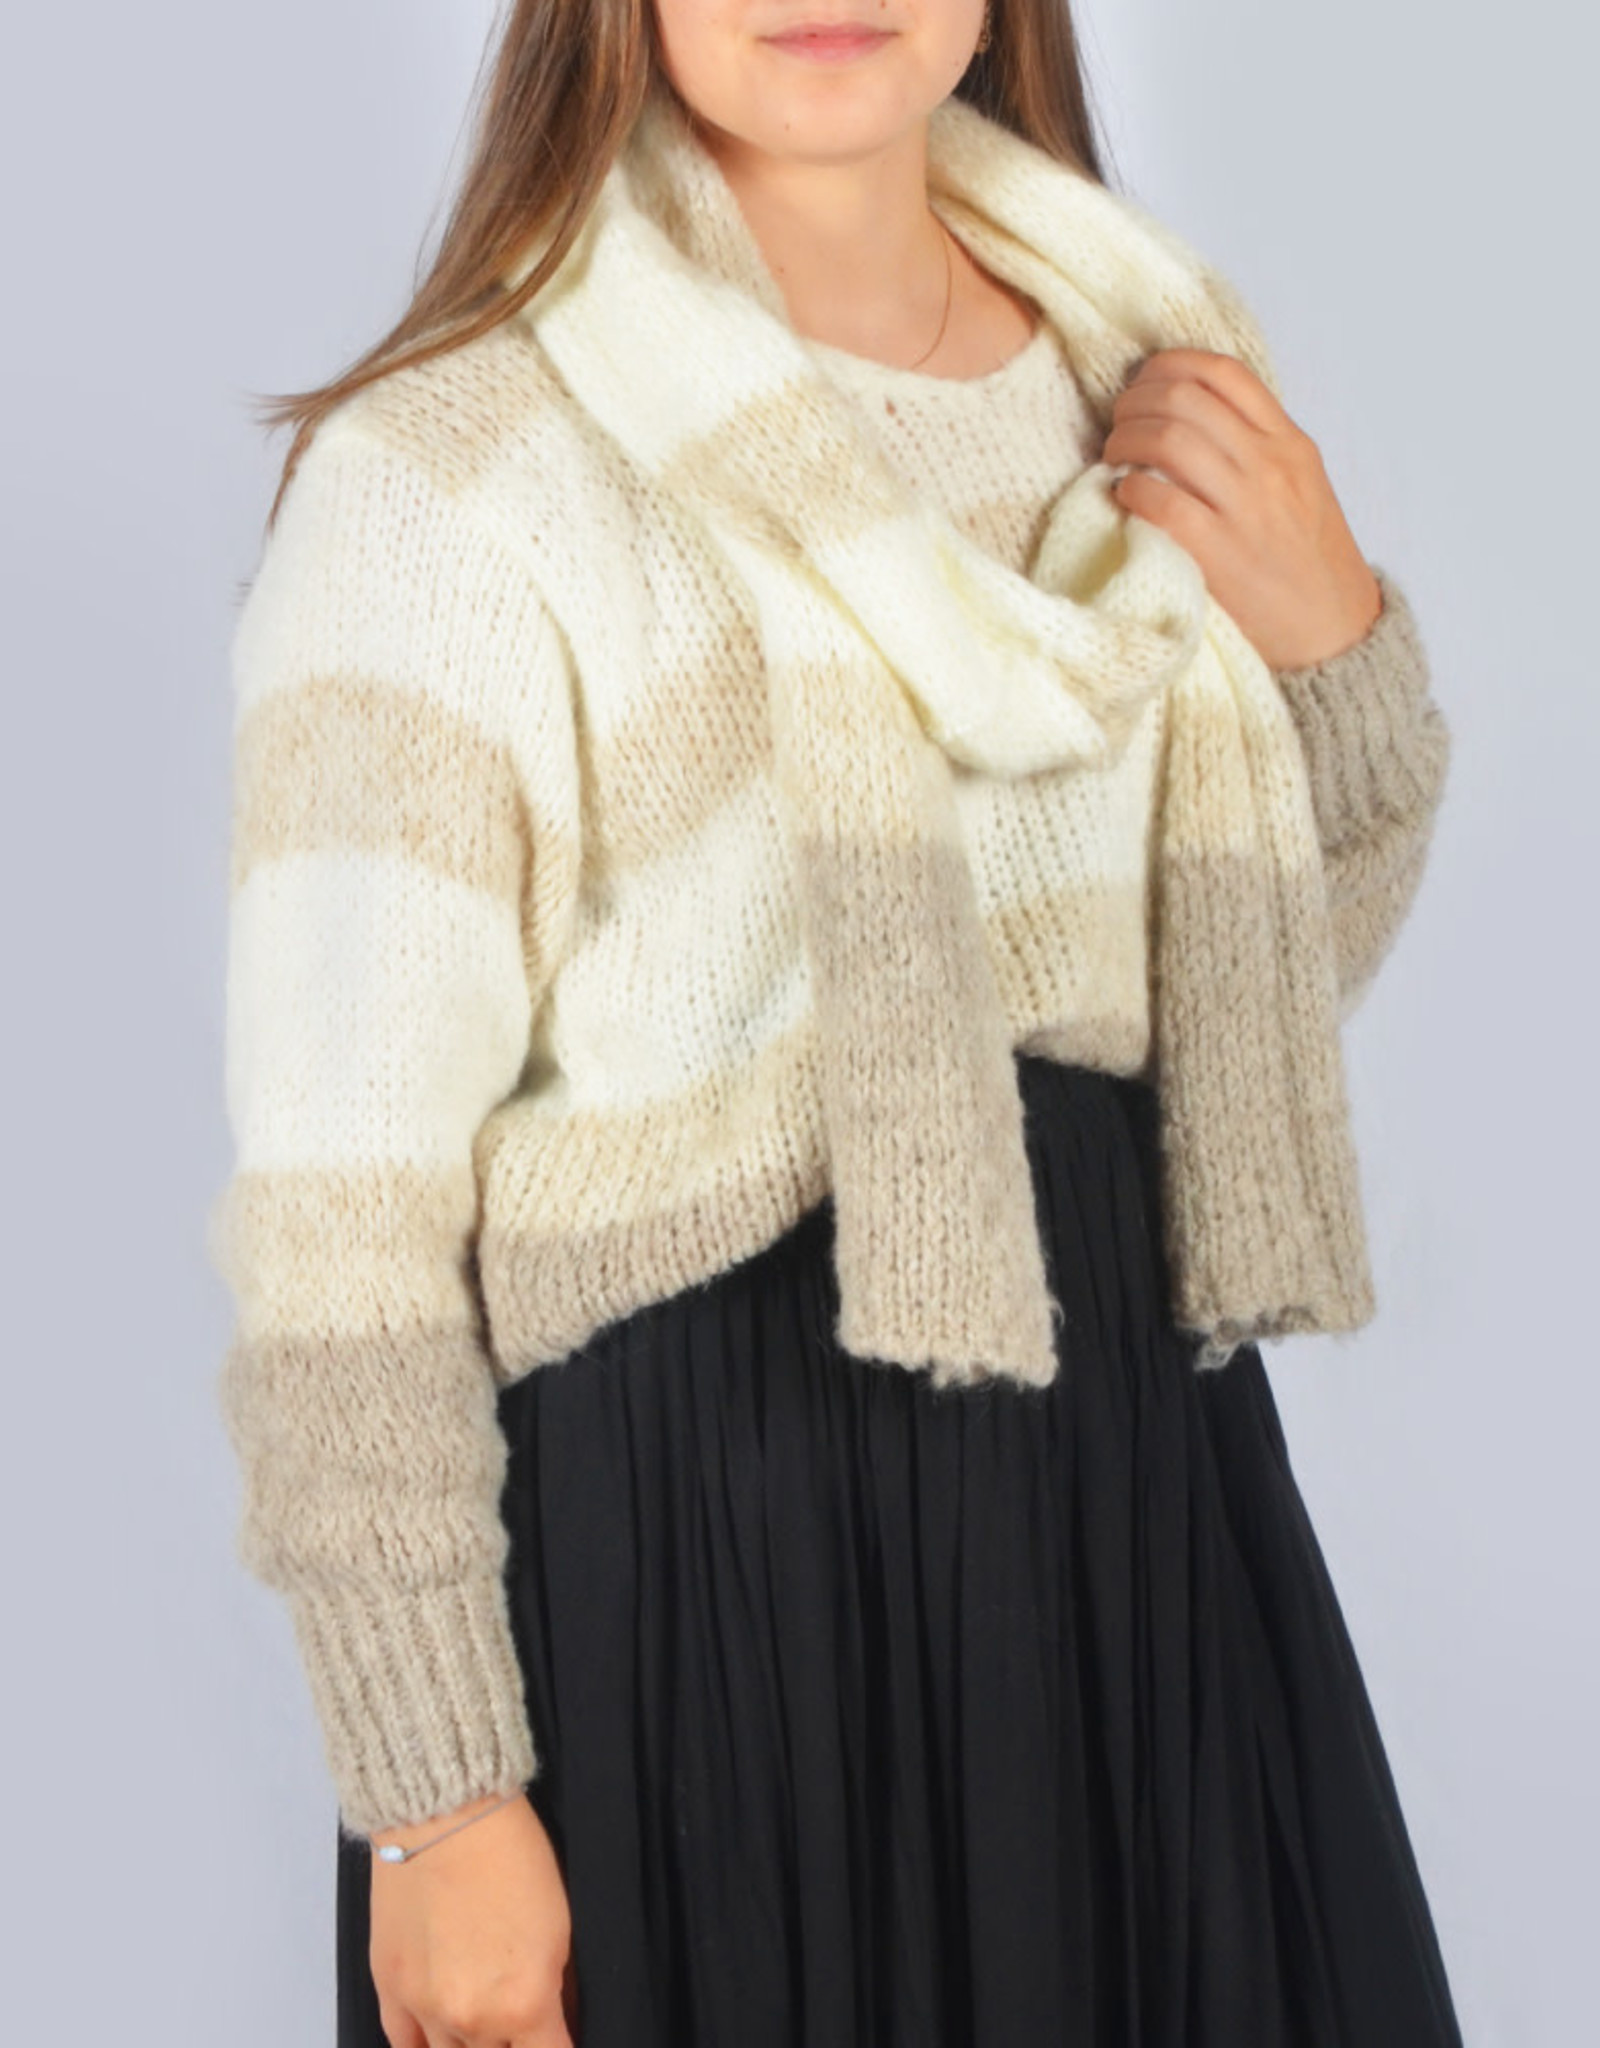 Snow sweater with scarf